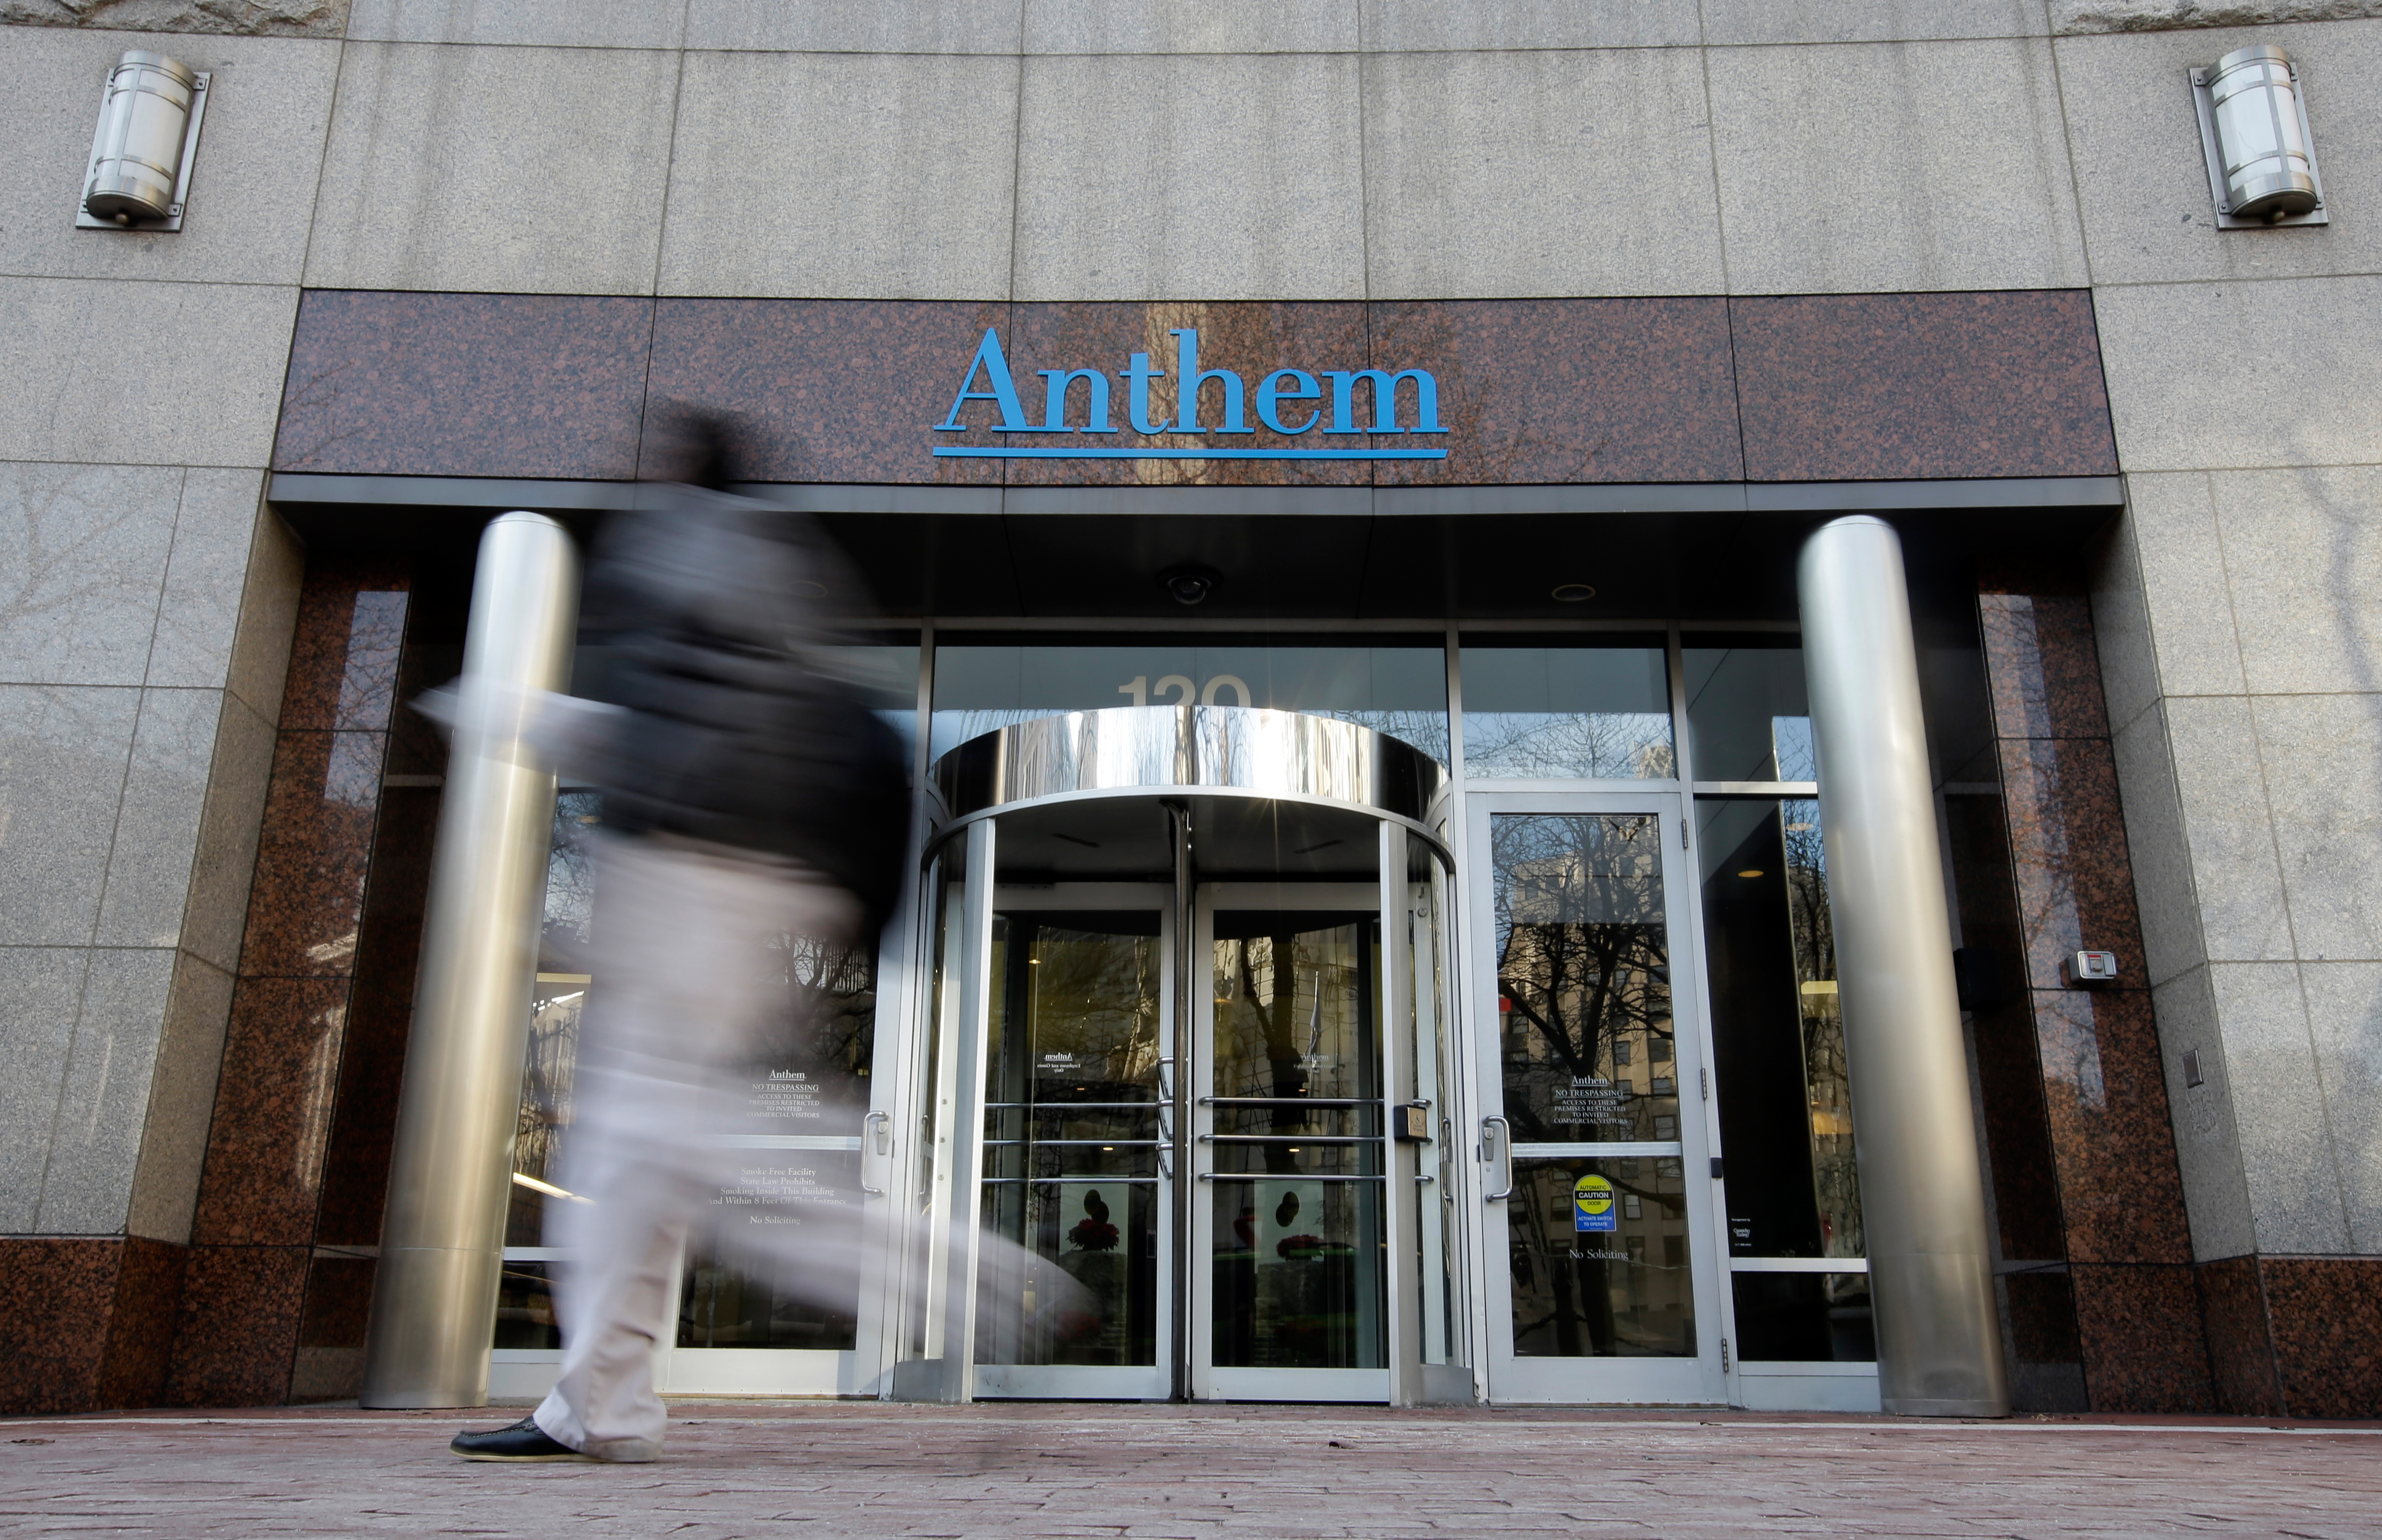 Anthem Data Breach: What Customers Need to Know | Money